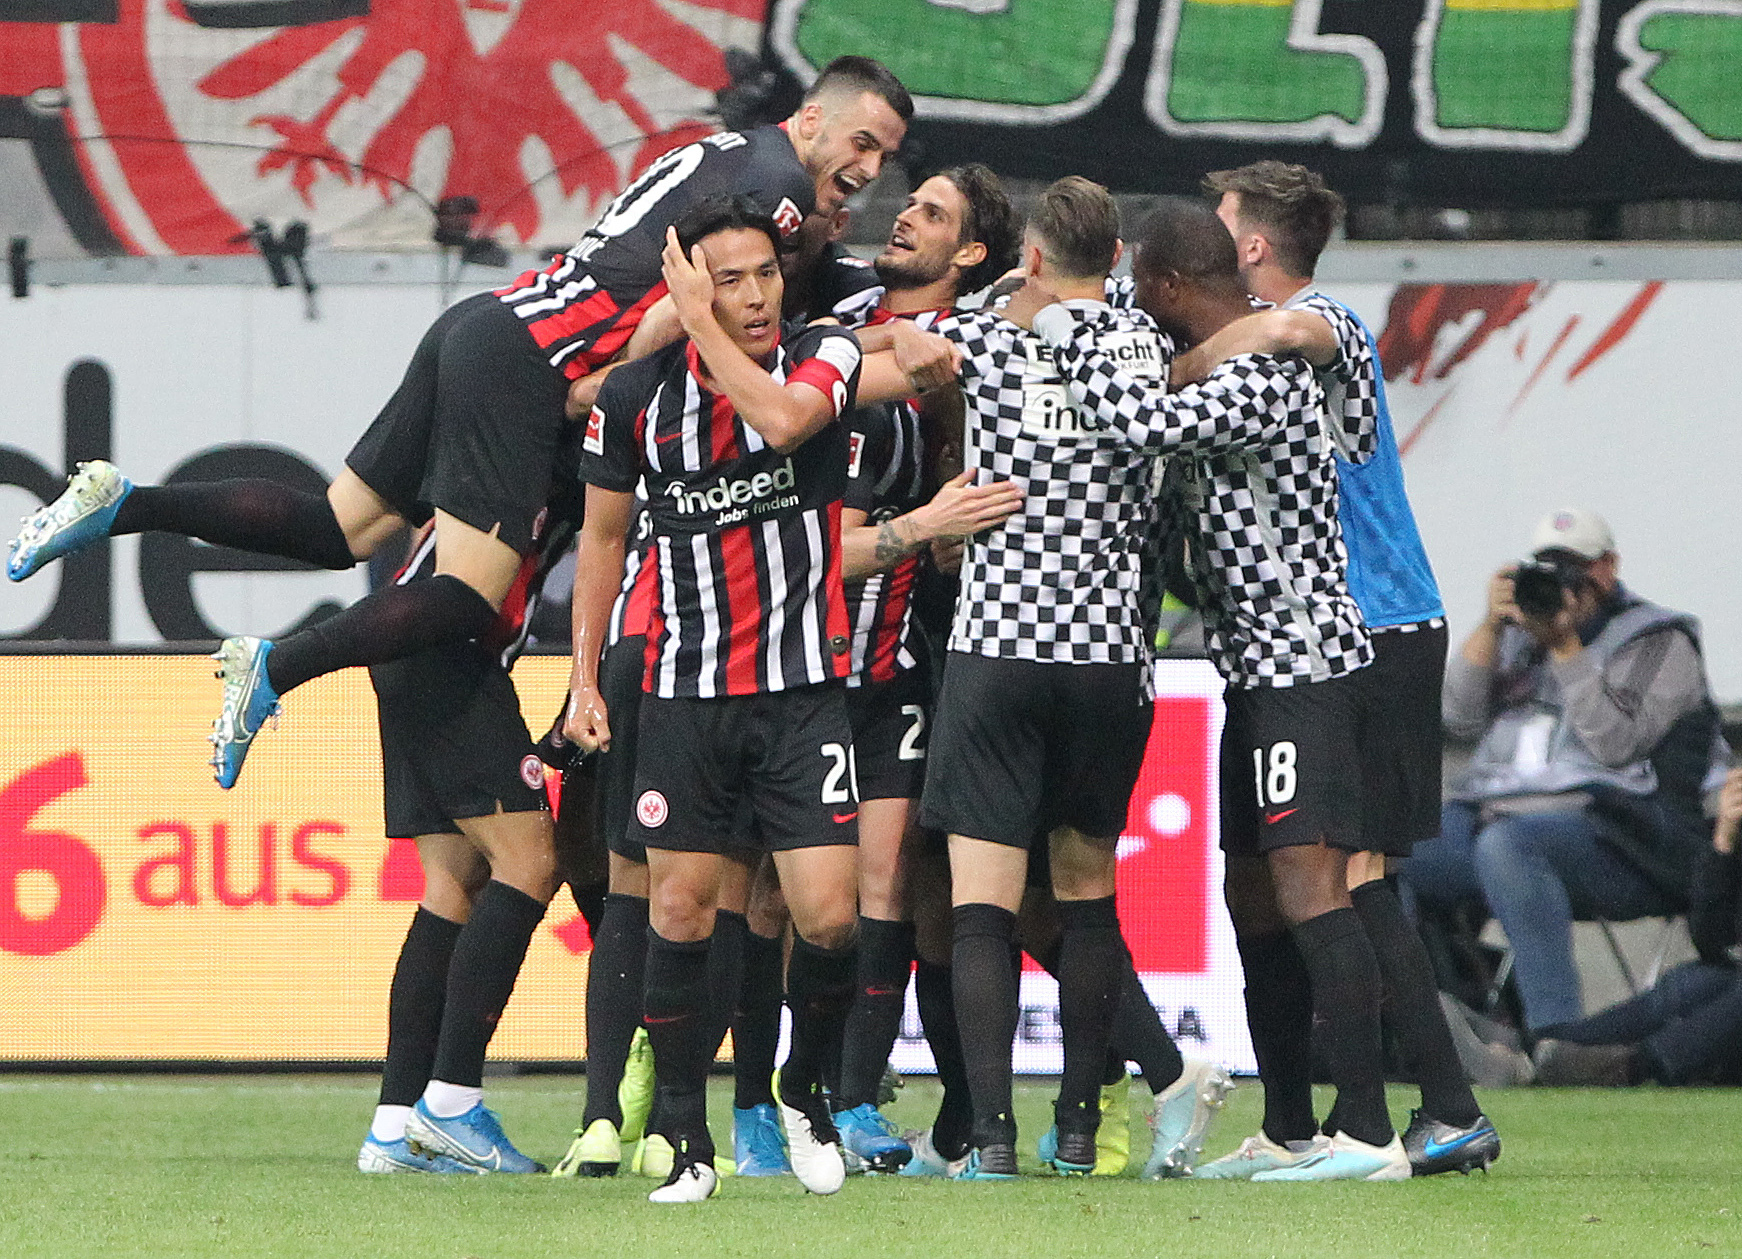 Frankfurts team celebrates the 2-2 during the German first division Bundesliga football match <HIT>Eintracht</HIT> Frankfurt vs Borussia Dortmund in Frankfurt, central Germany on September 22, 2019. (Photo by Daniel ROLAND / AFP) / RESTRICTIONS: DFL REGULATIONS PROHIBIT ANY USE OF PHOTOGRAPHS AS IMAGE SEQUENCES AND/OR QUASI-VIDEO